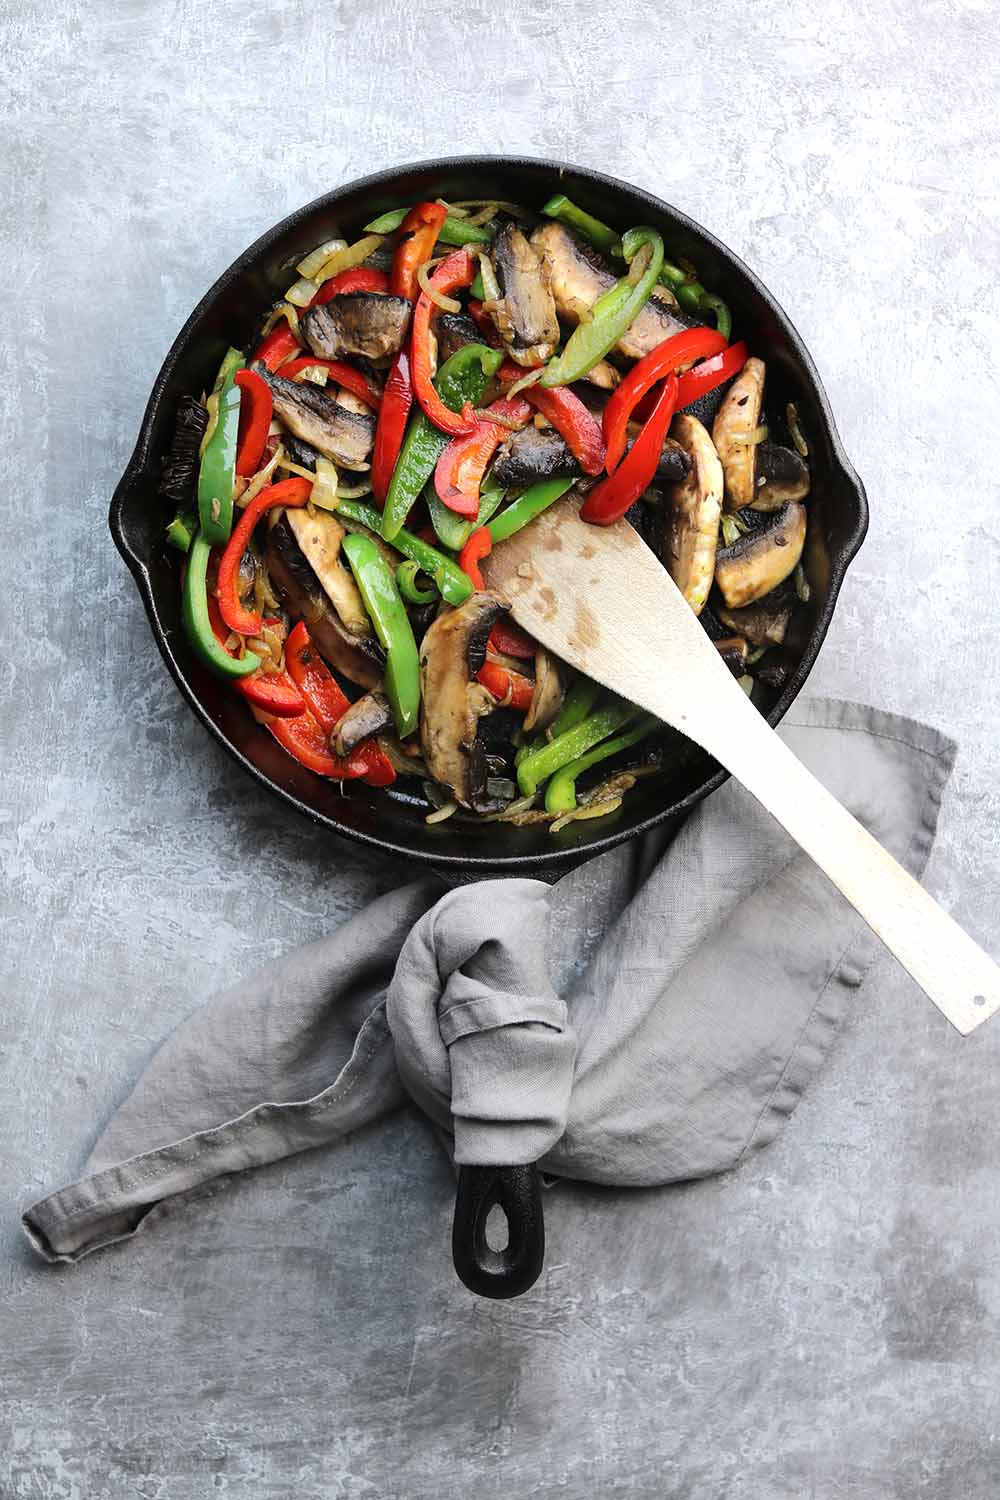 skillet with vegetables